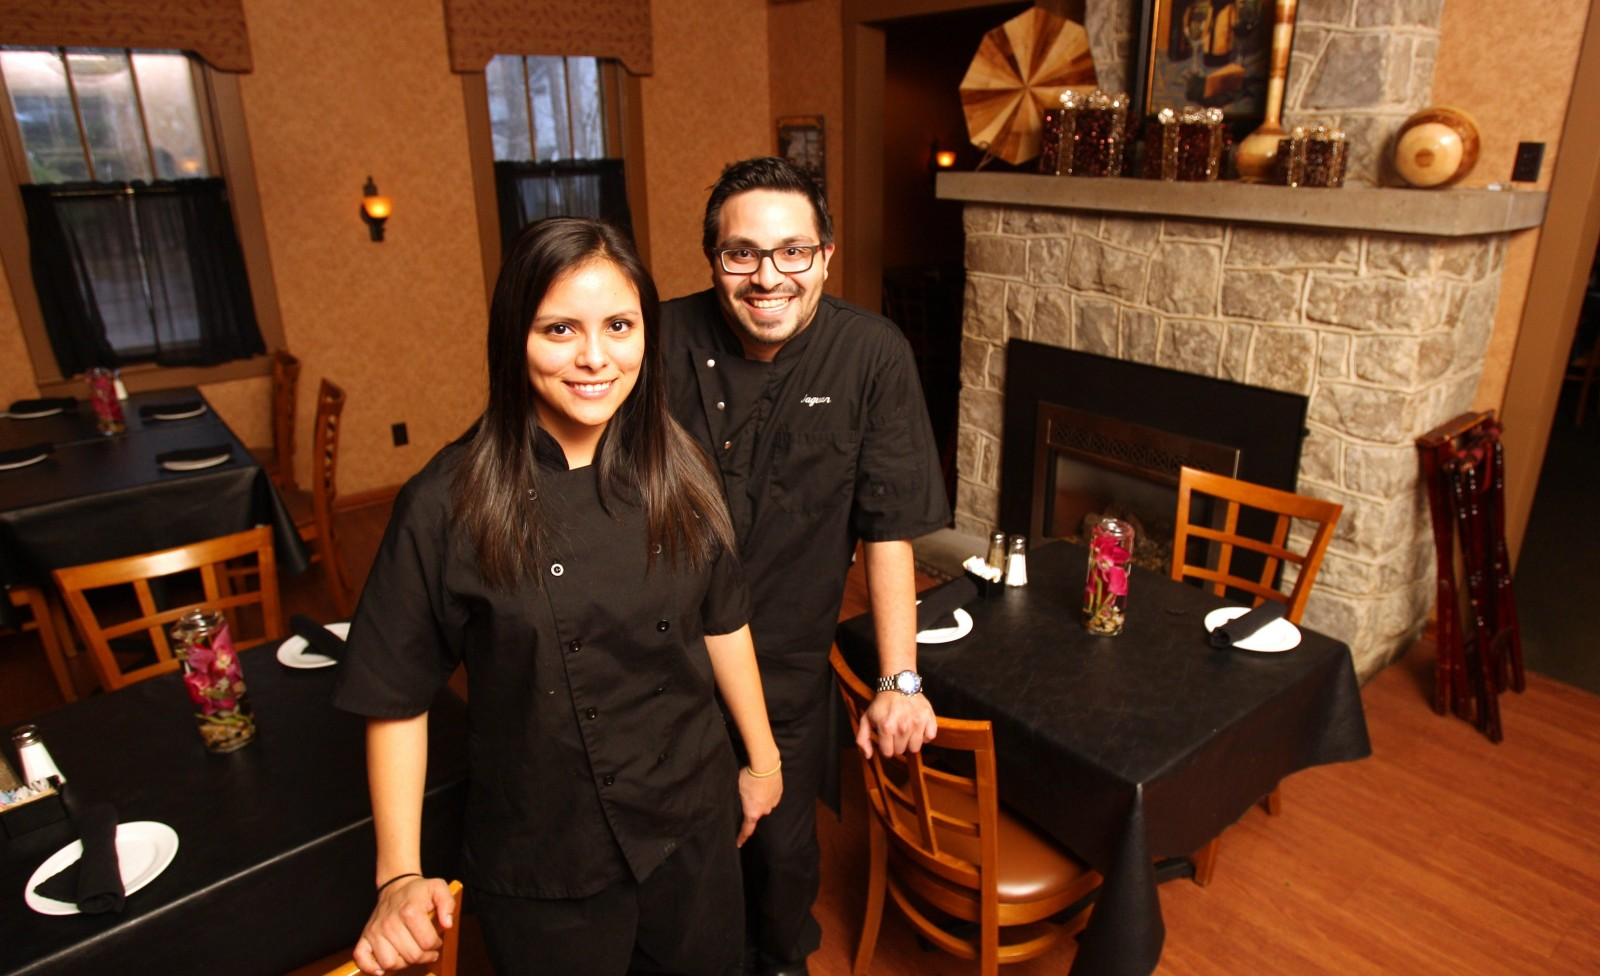 Victor Parra Gonzalez, right, and his sister Diana Parra closed their Youngstown restaurant, Jaguar at the Bistro, two months ago to focus on Buffalo restaurant projects. (Sharon Cantillon/Buffalo News file photo)